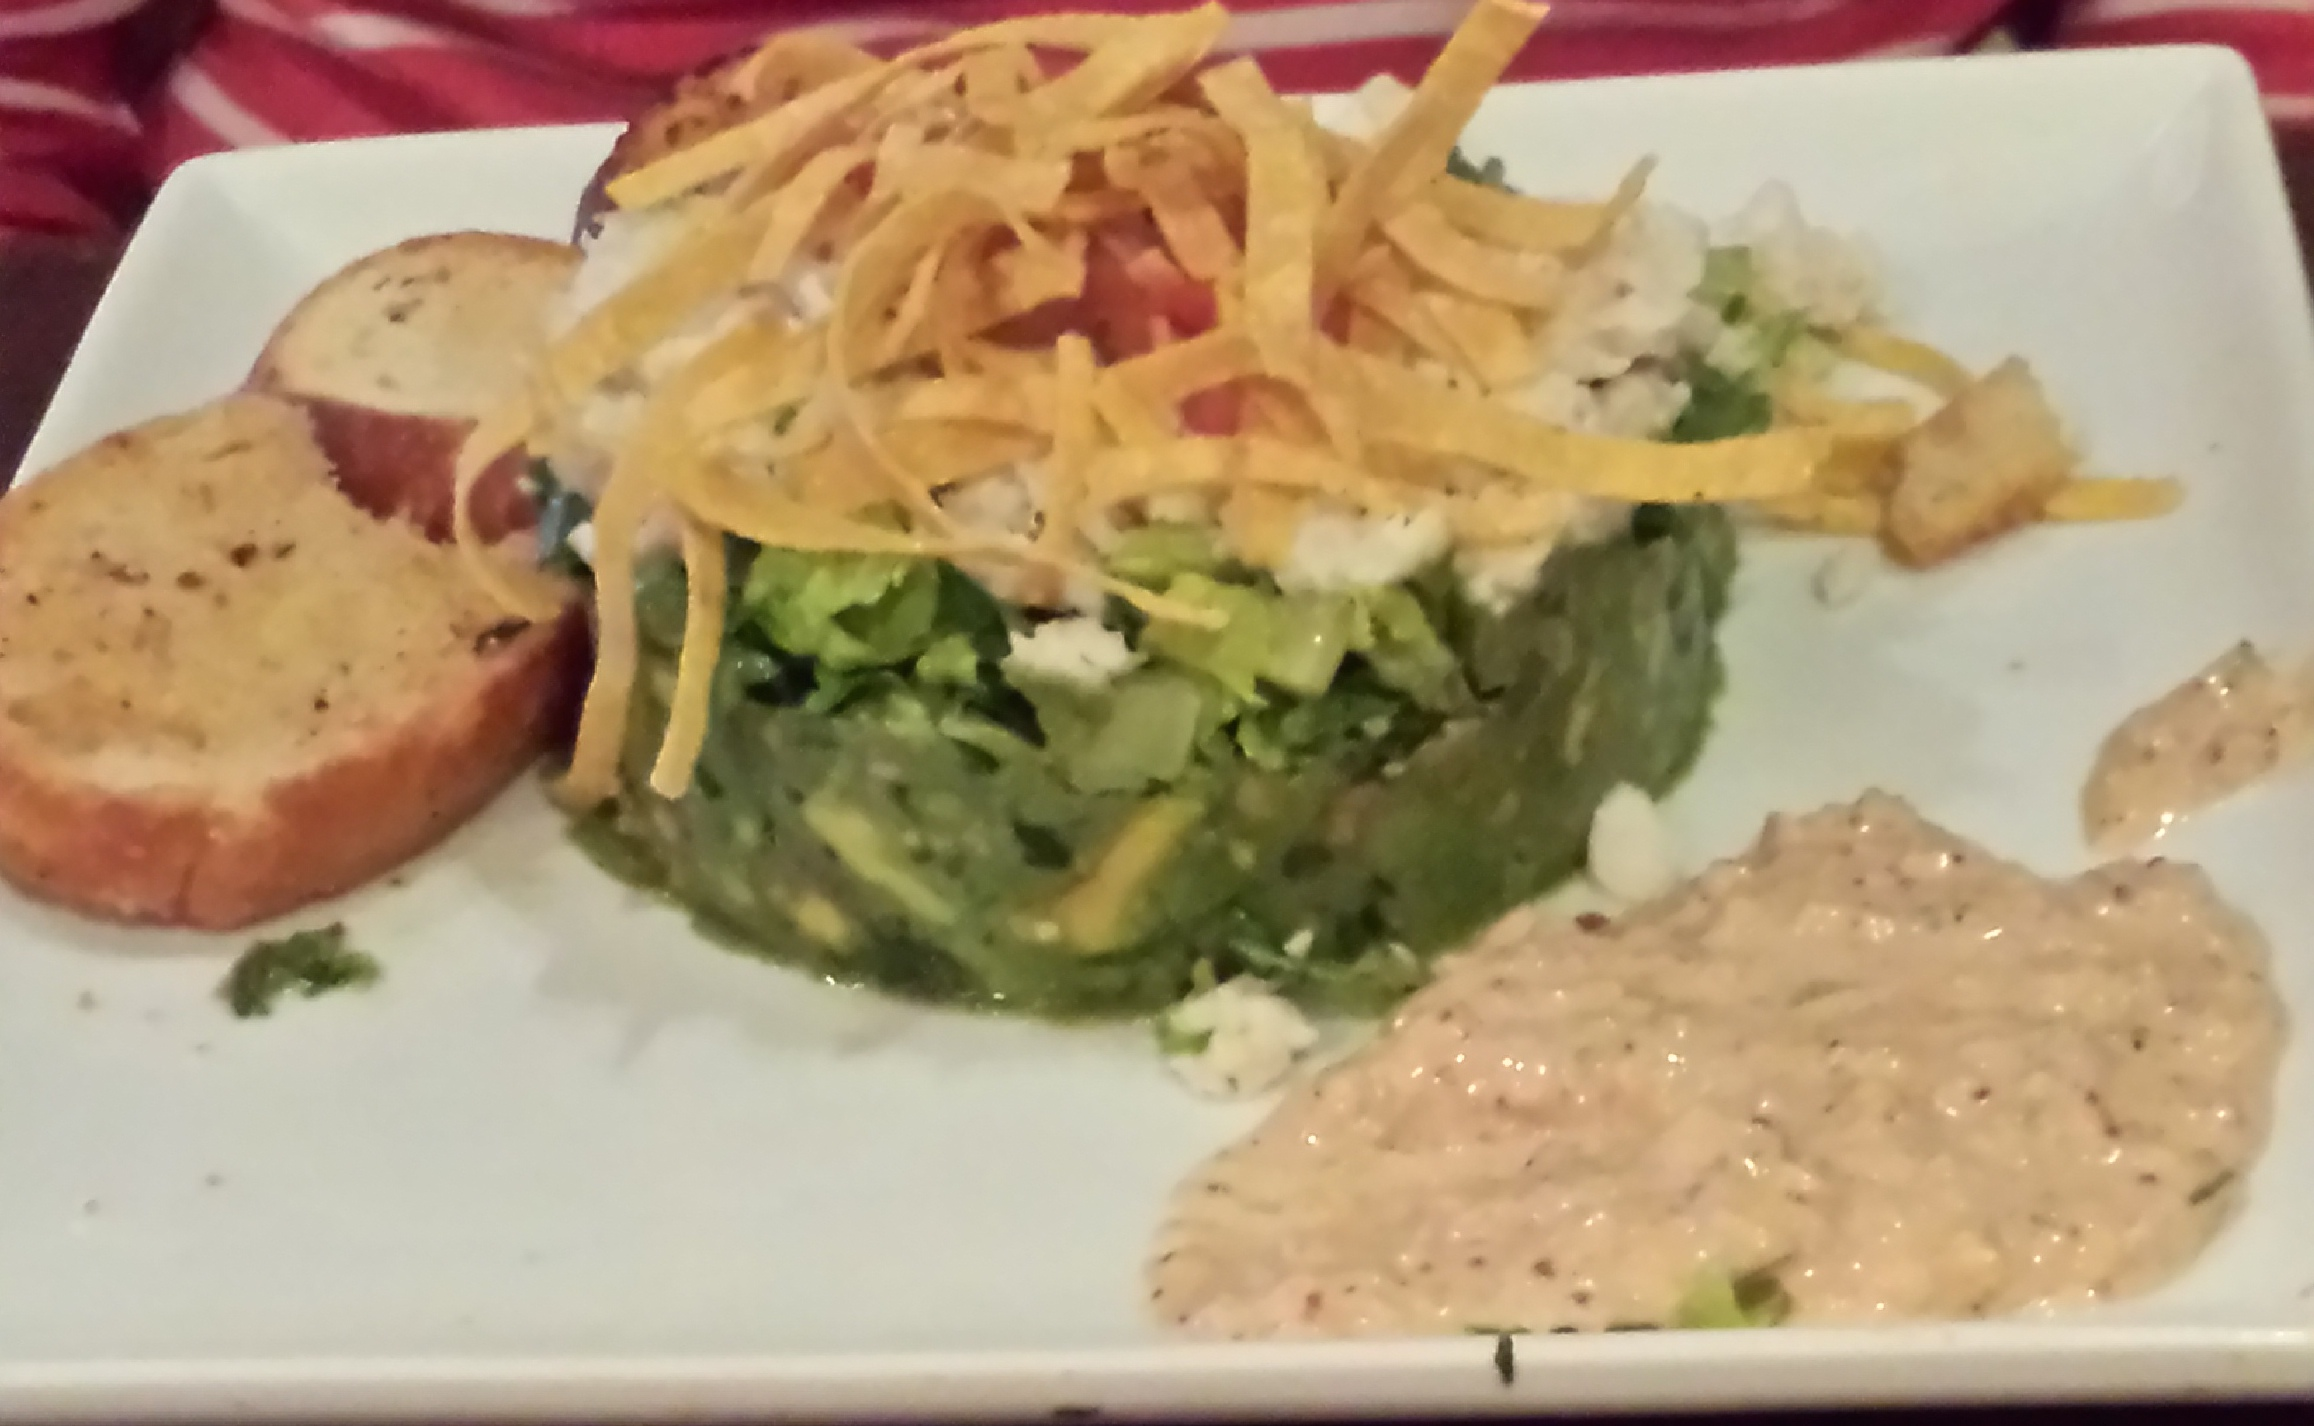 A lovely lump crab salad in an avocado base with crisp chips on top from Texas Land and Cattle